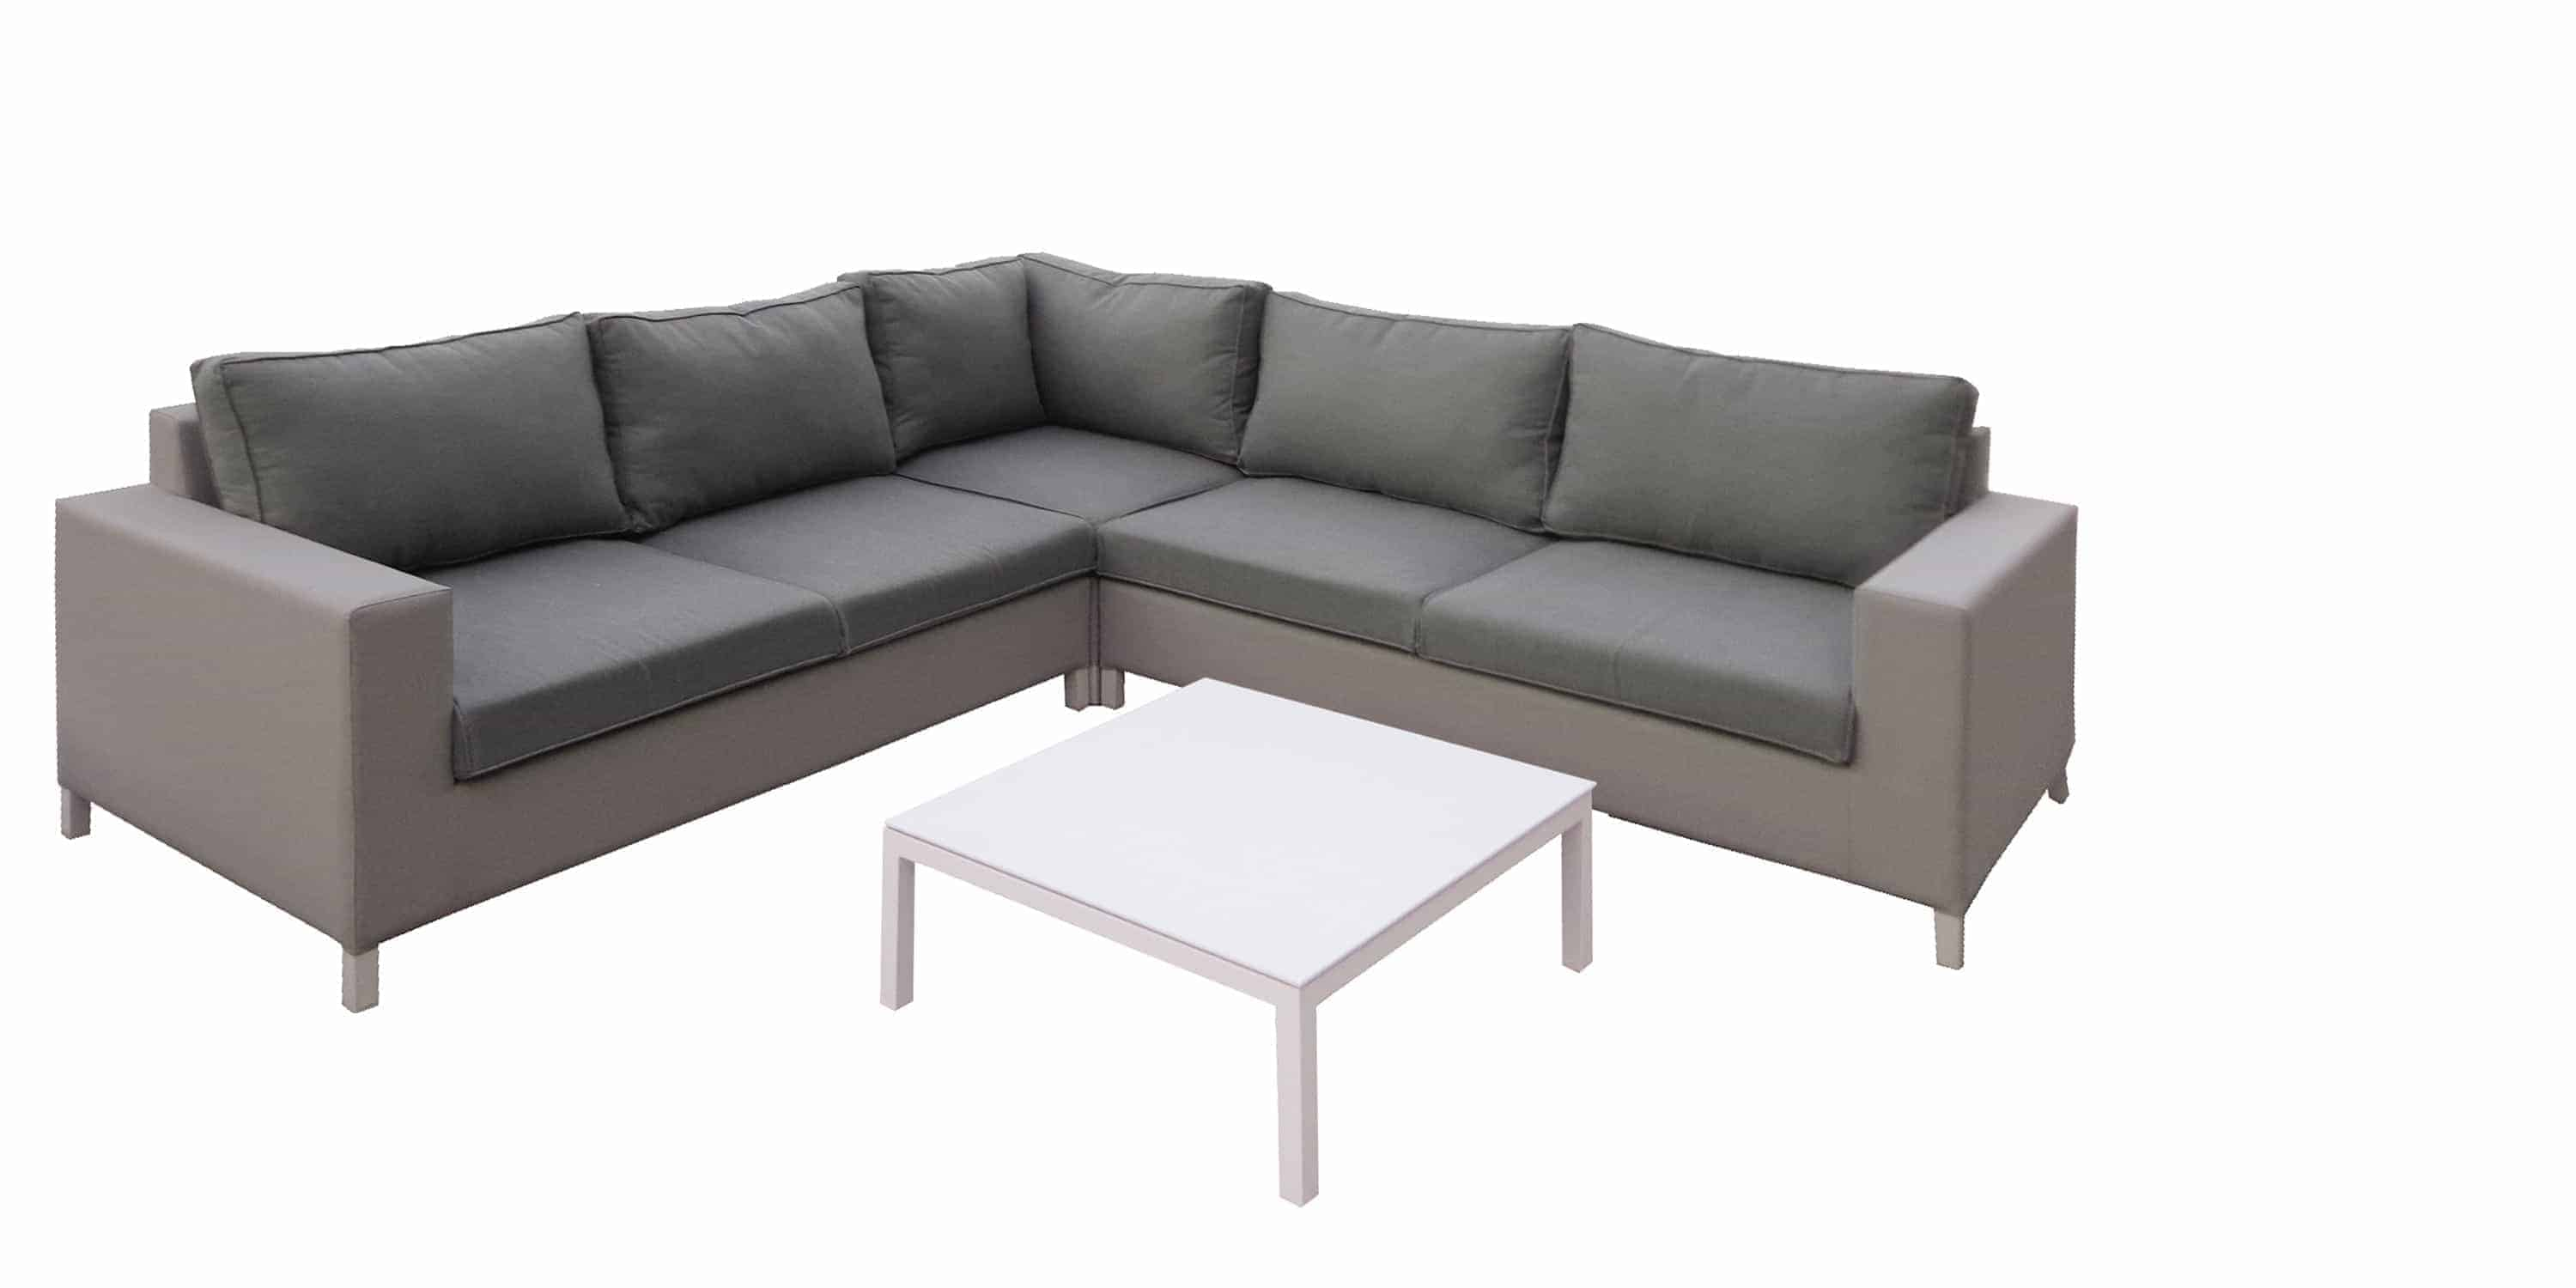 departments sofa patio couch lounge furniture for outdoor sienna chaise spaces backyard outside your living lounges